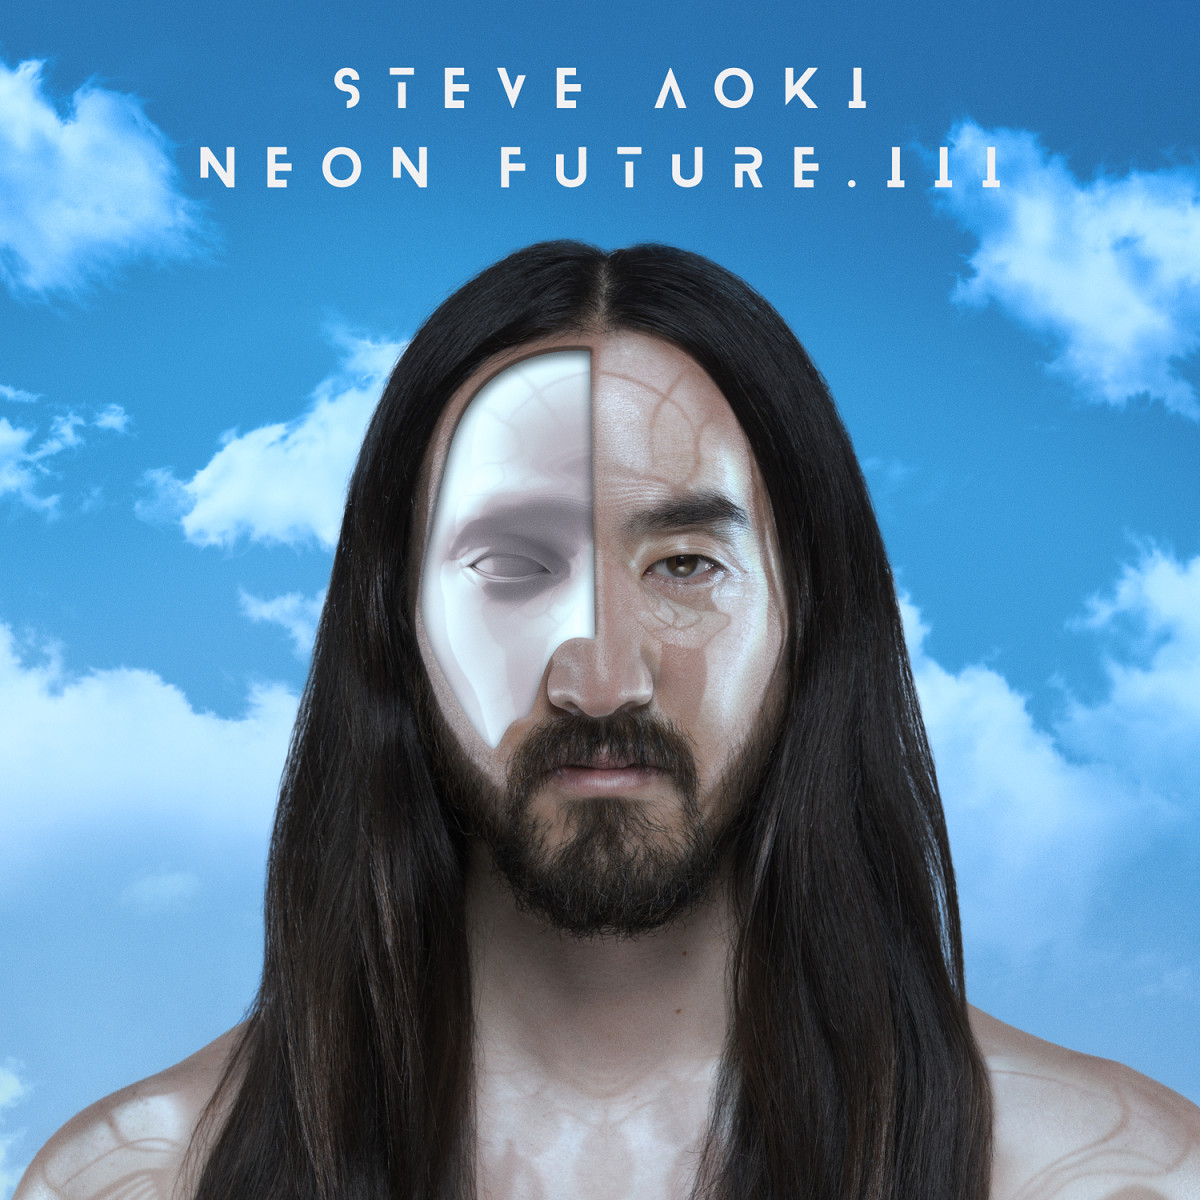 Album artwork for Steve Aoki's Neon Future III.